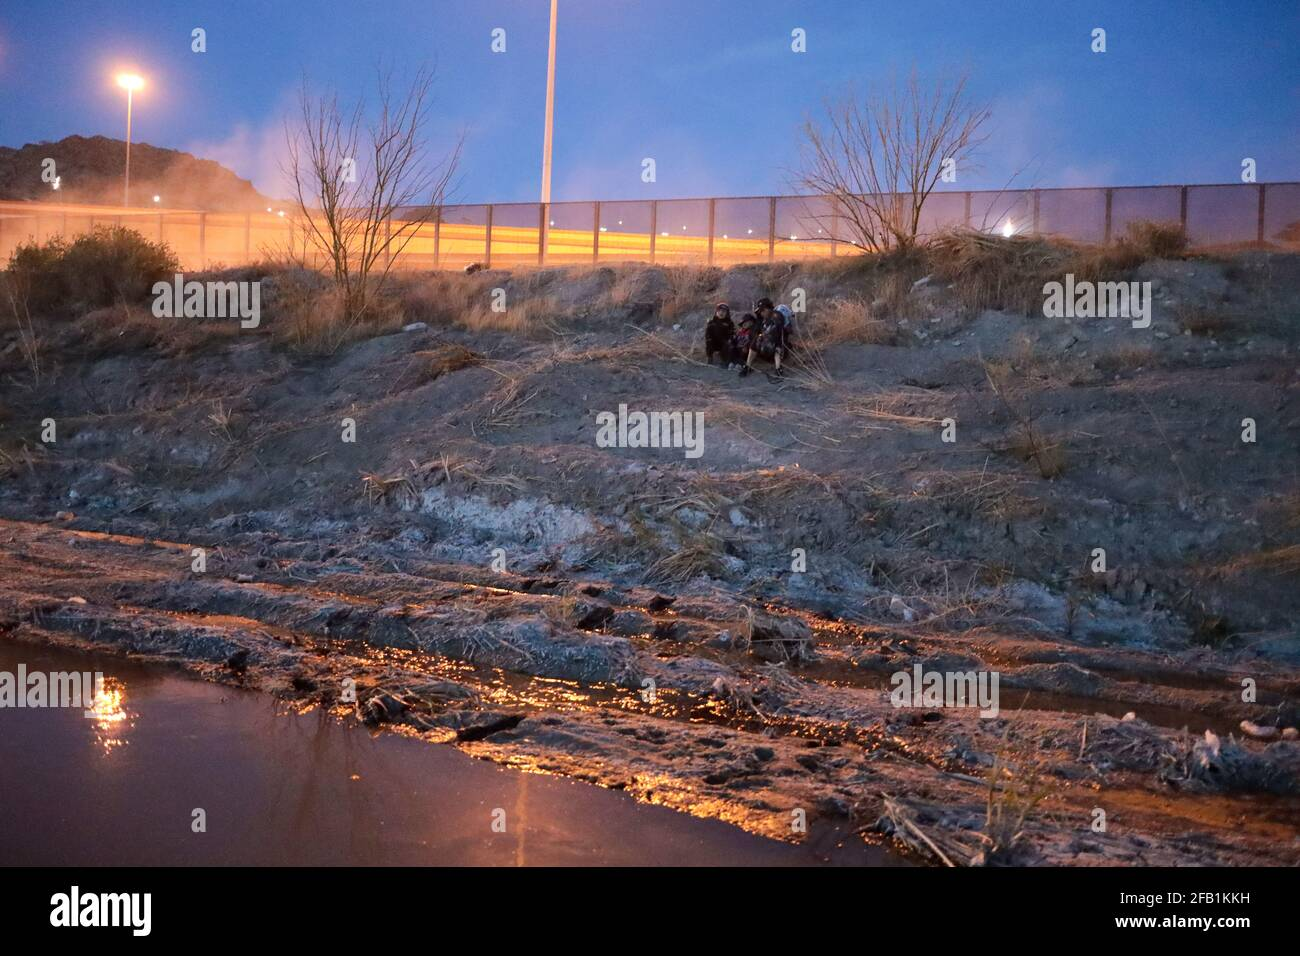 Juarez, Mexico. 29th Mar, 2021. A Guatemalan woman and her two children crossed the Rio Grande illegally to request political asylum in the United States (Photo by David Peinado/Pacific Press/Sipa USA) Credit: Sipa USA/Alamy Live News Stock Photo